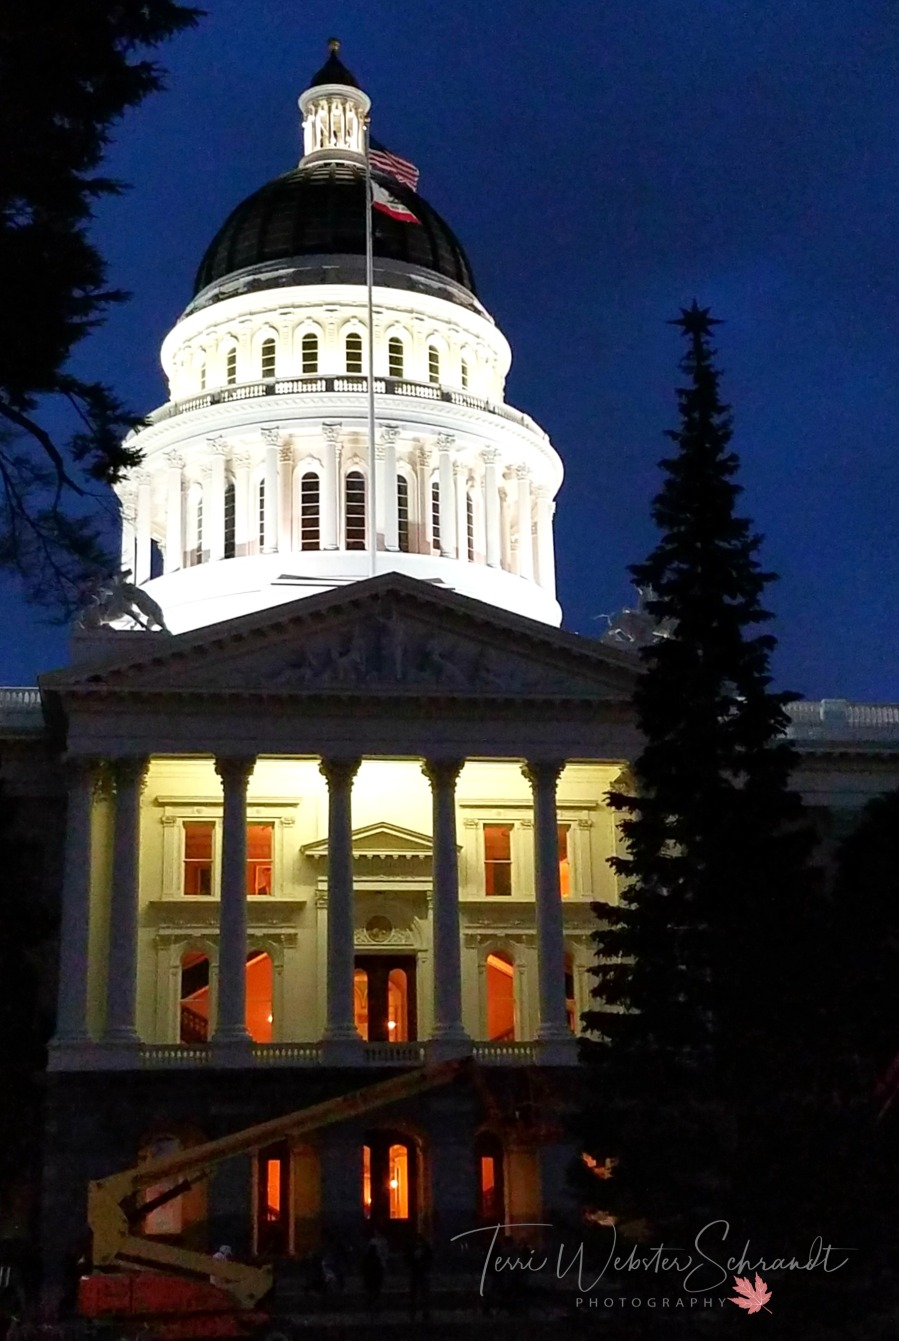 Cal State Capitol